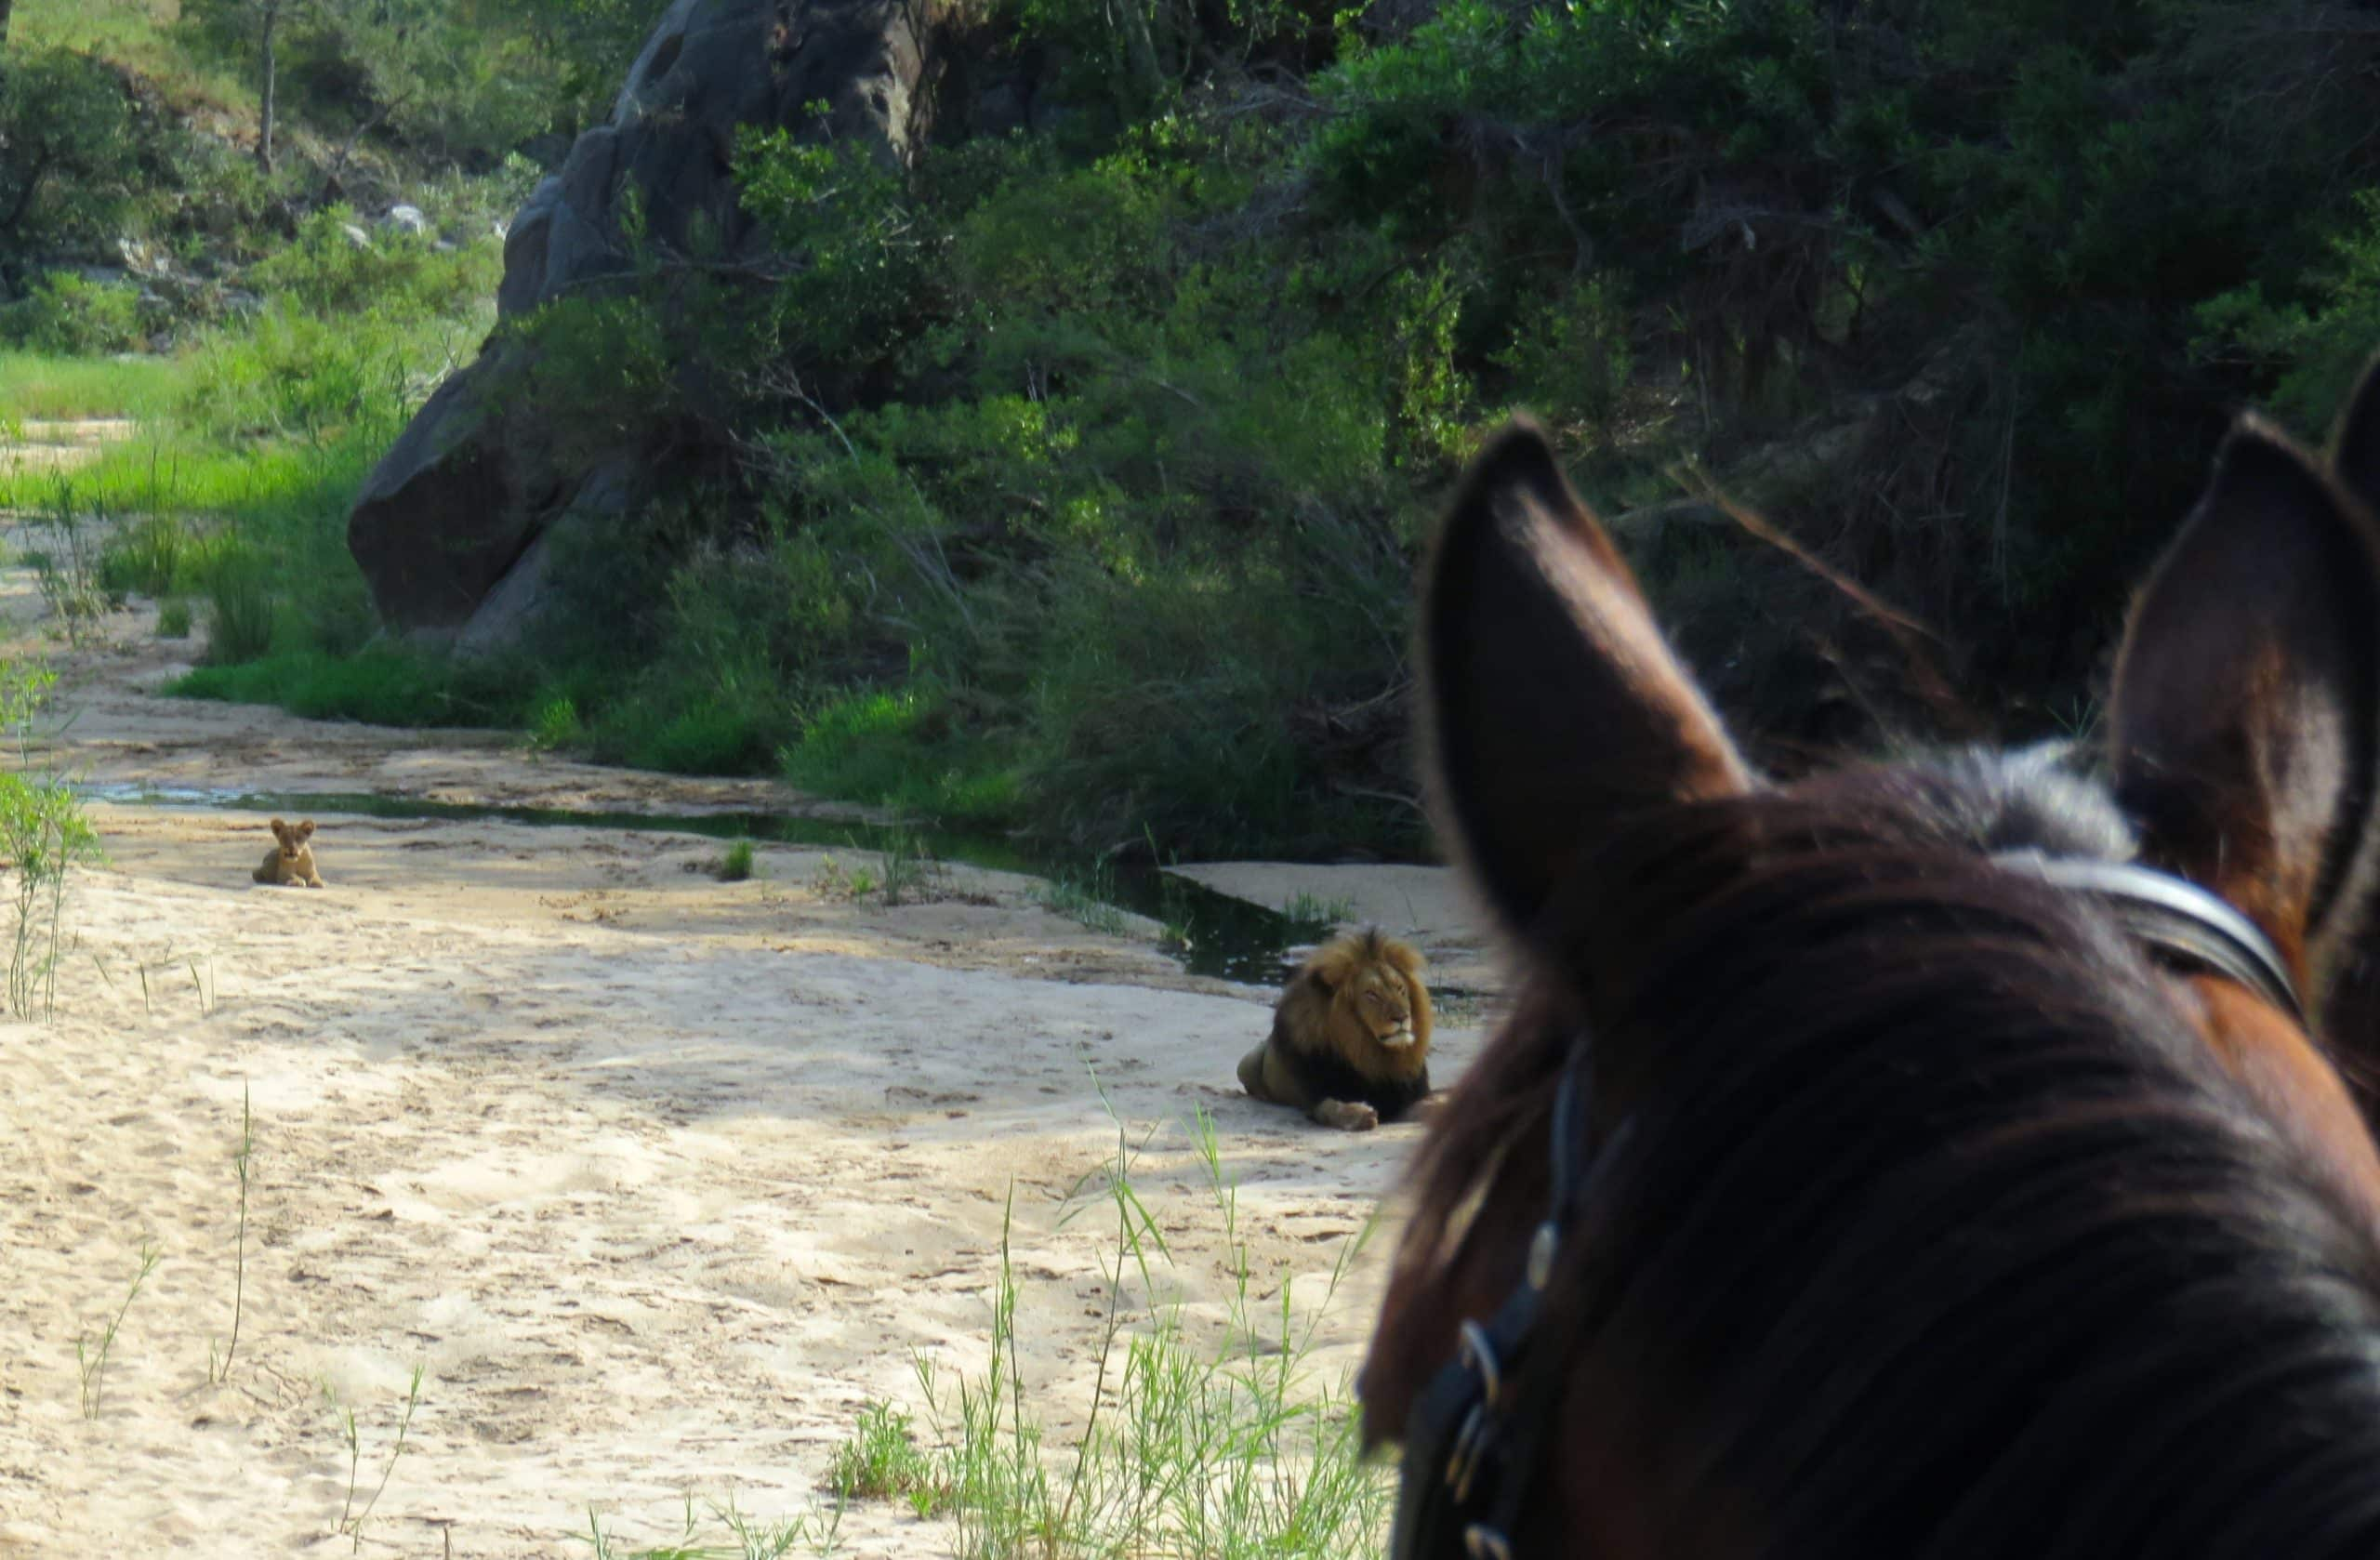 Lions on horseback trail at Wait-a-Little